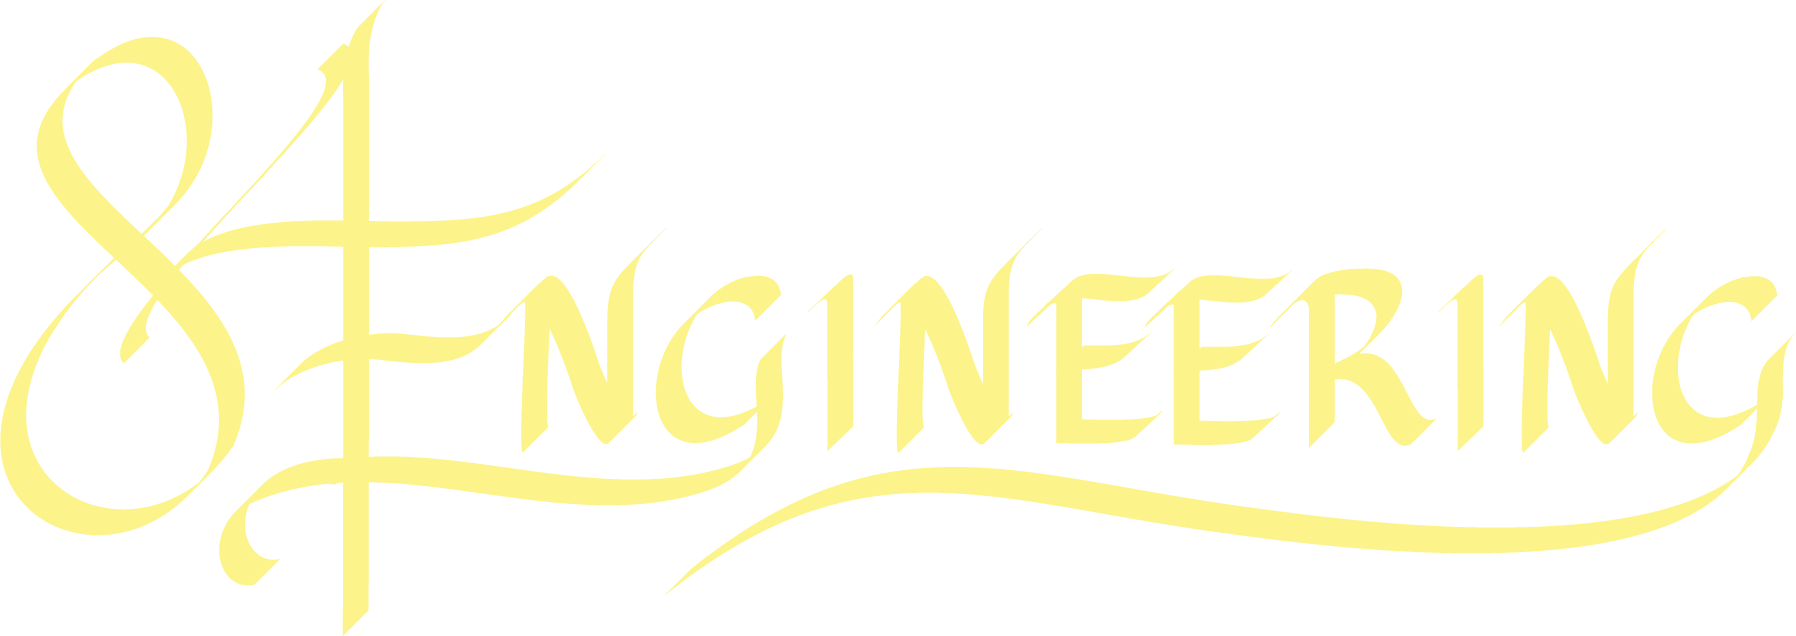 84 Engineering